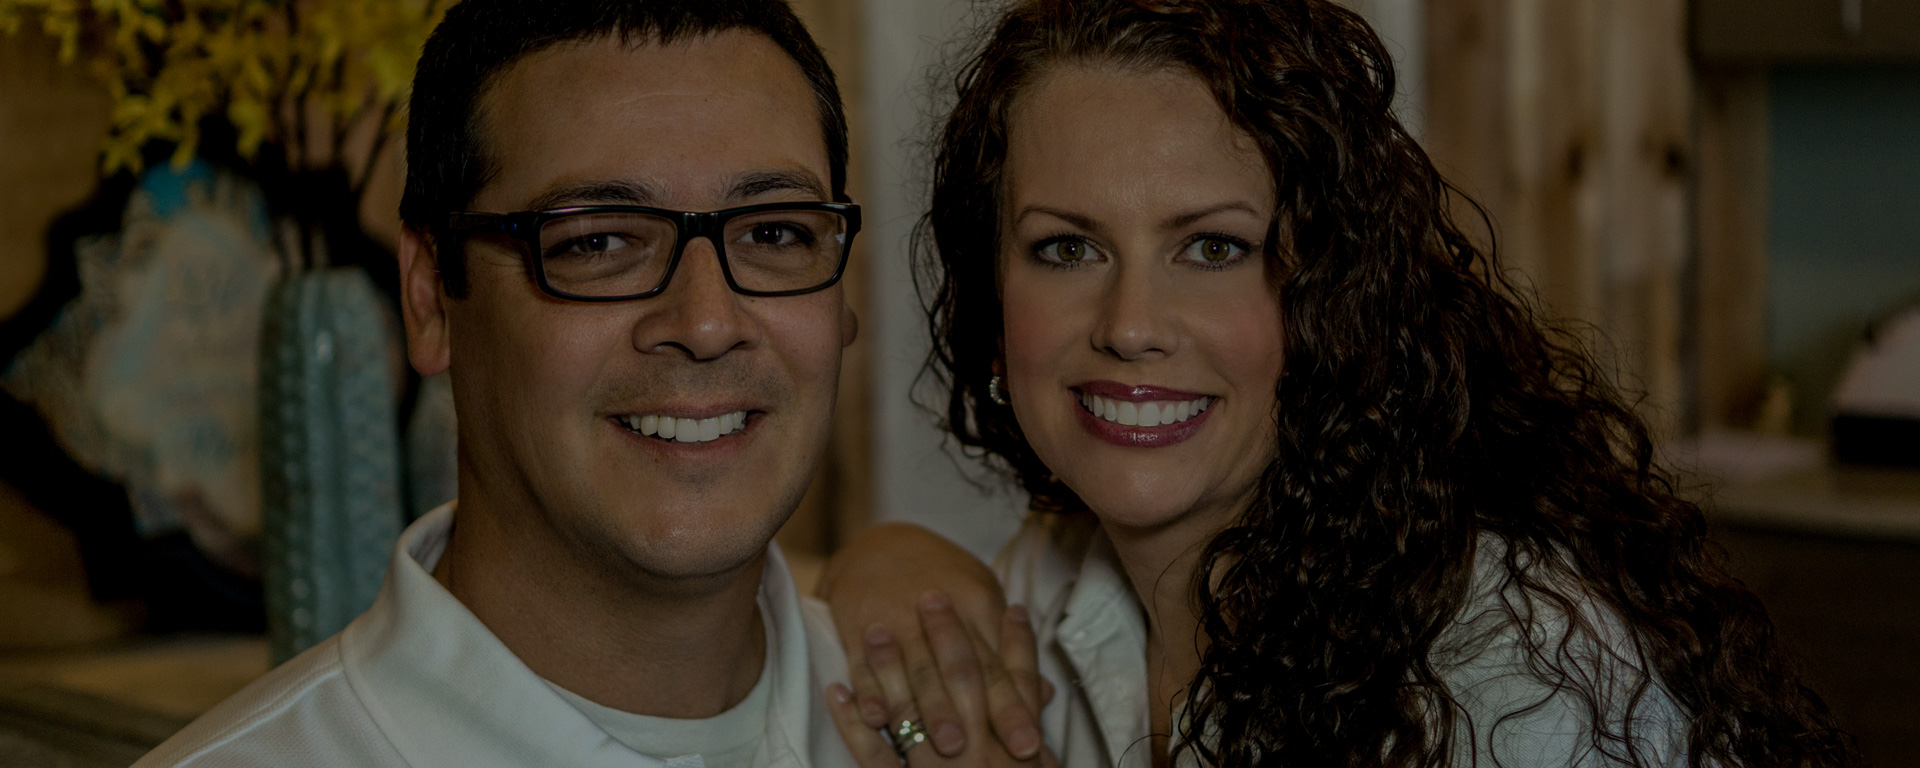 Angie with her husband, Joseph